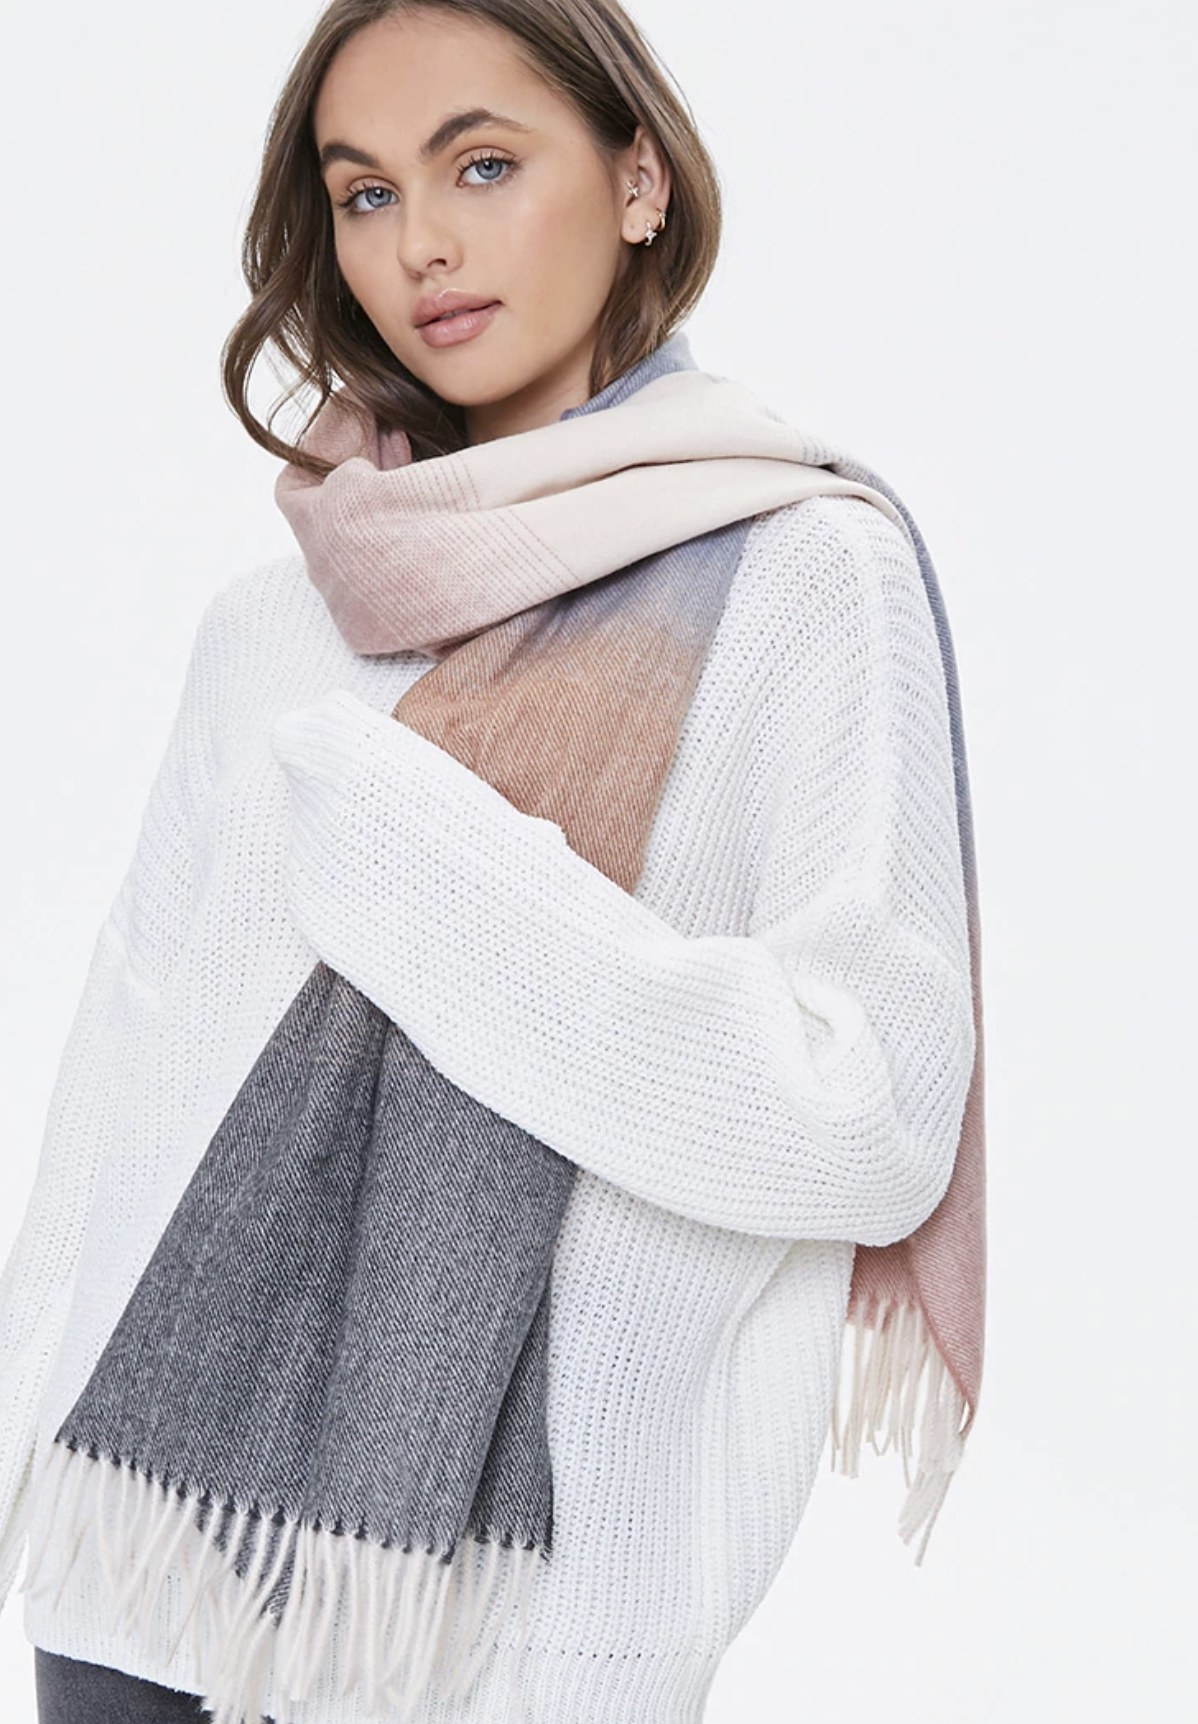 Model is wearing an ombre scarf in the colors grey, peach, and pink over a white sweater